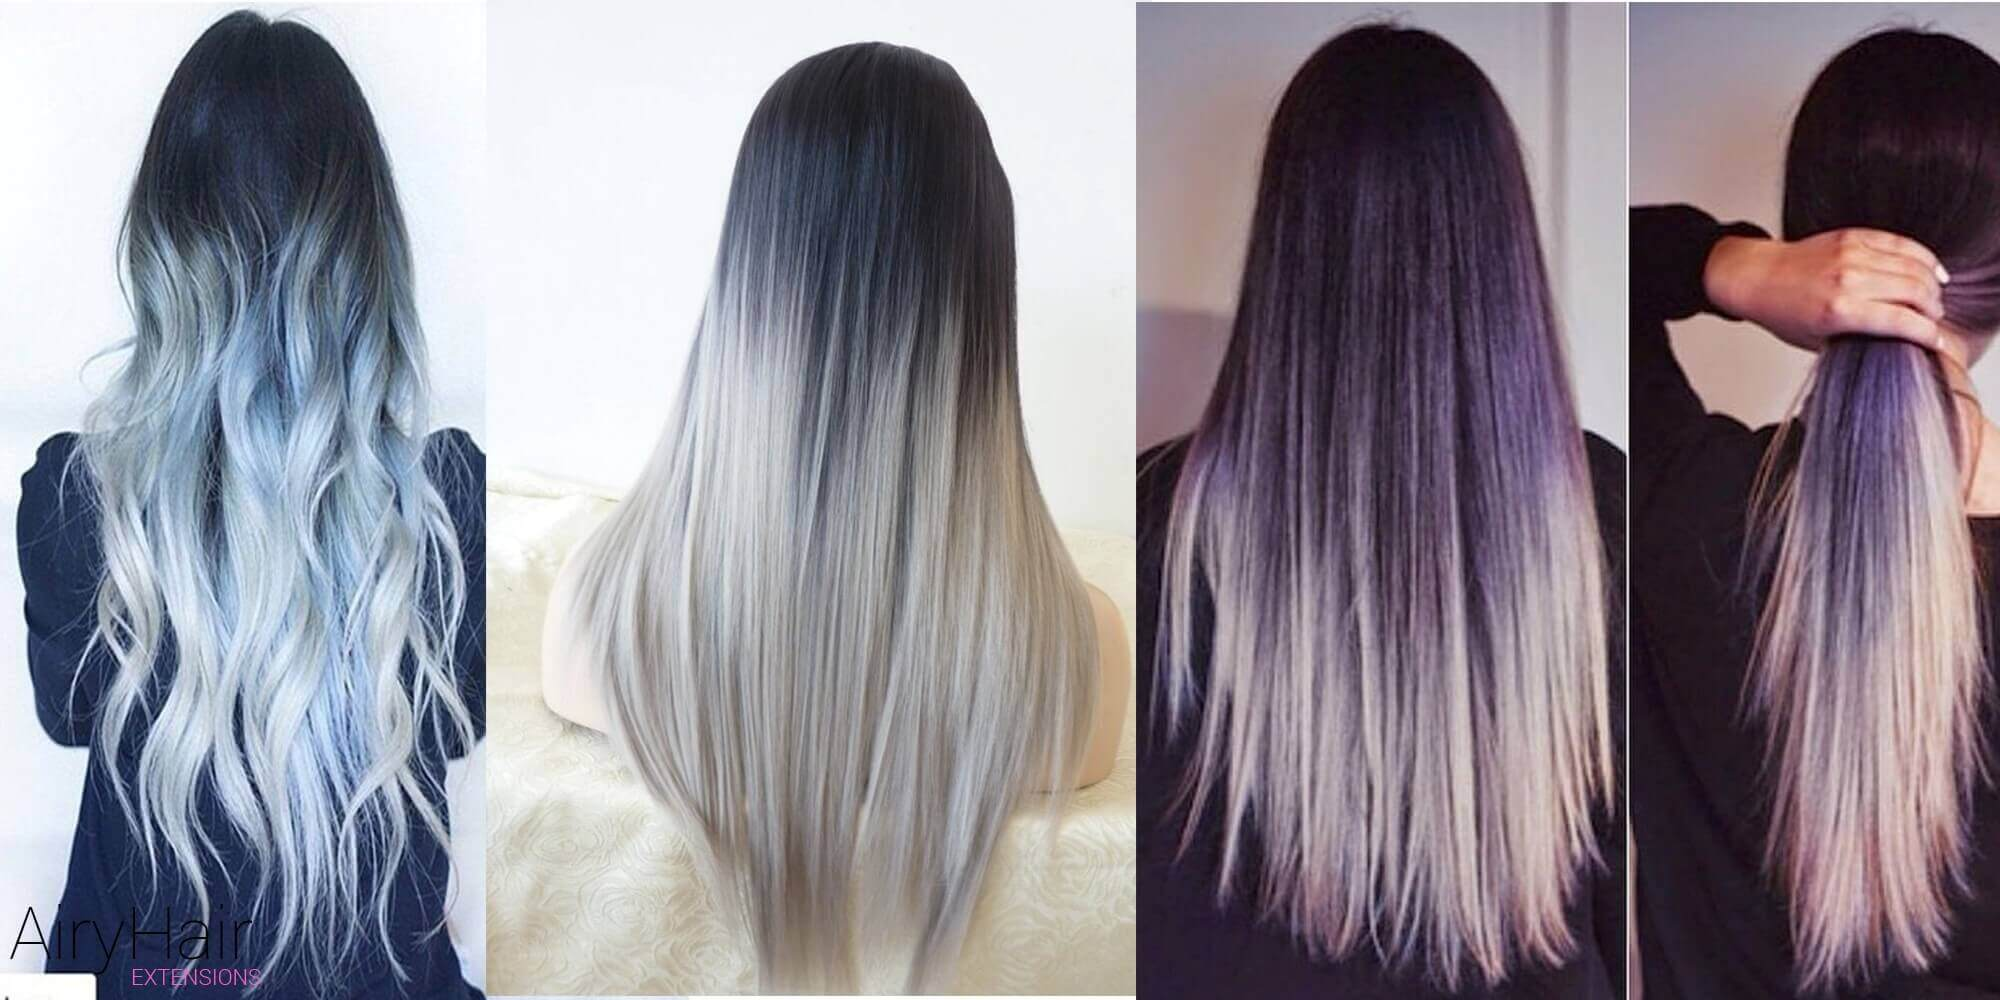 Trendy Black and Silver Ombre